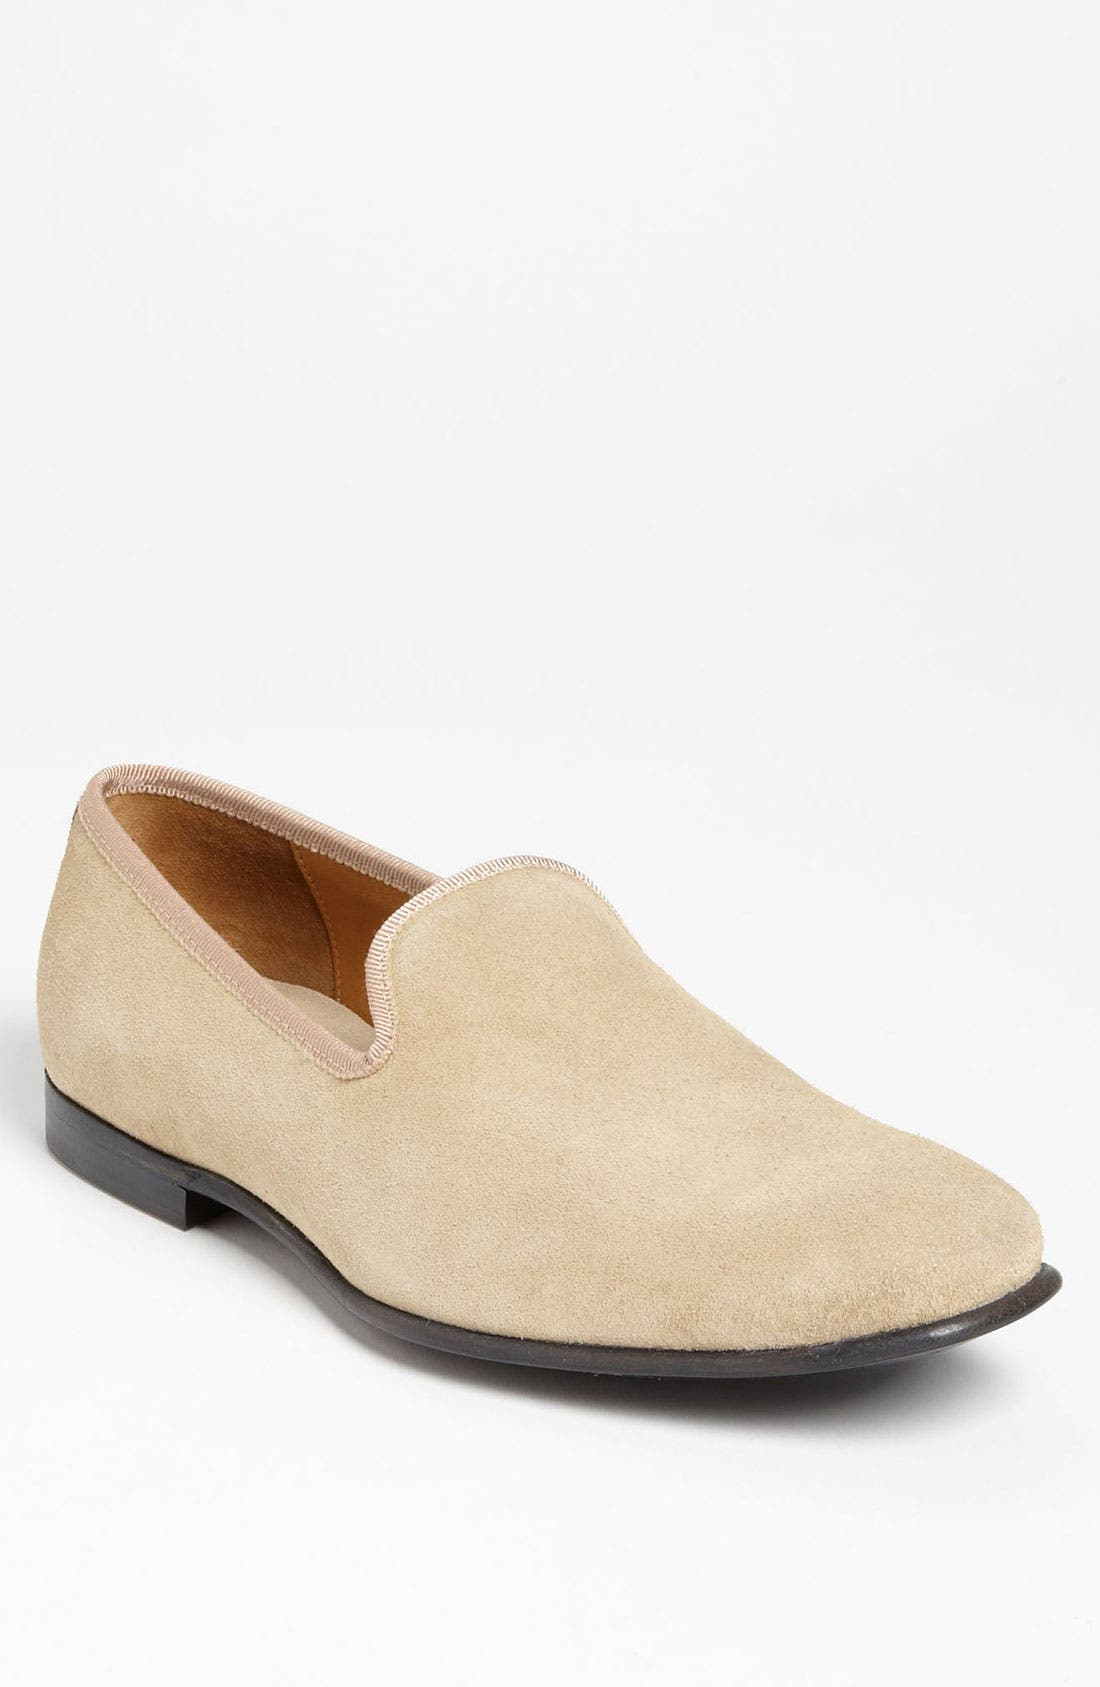 Alternate Image 1 Selected - McQ by Alexander McQueen Suede Loafer